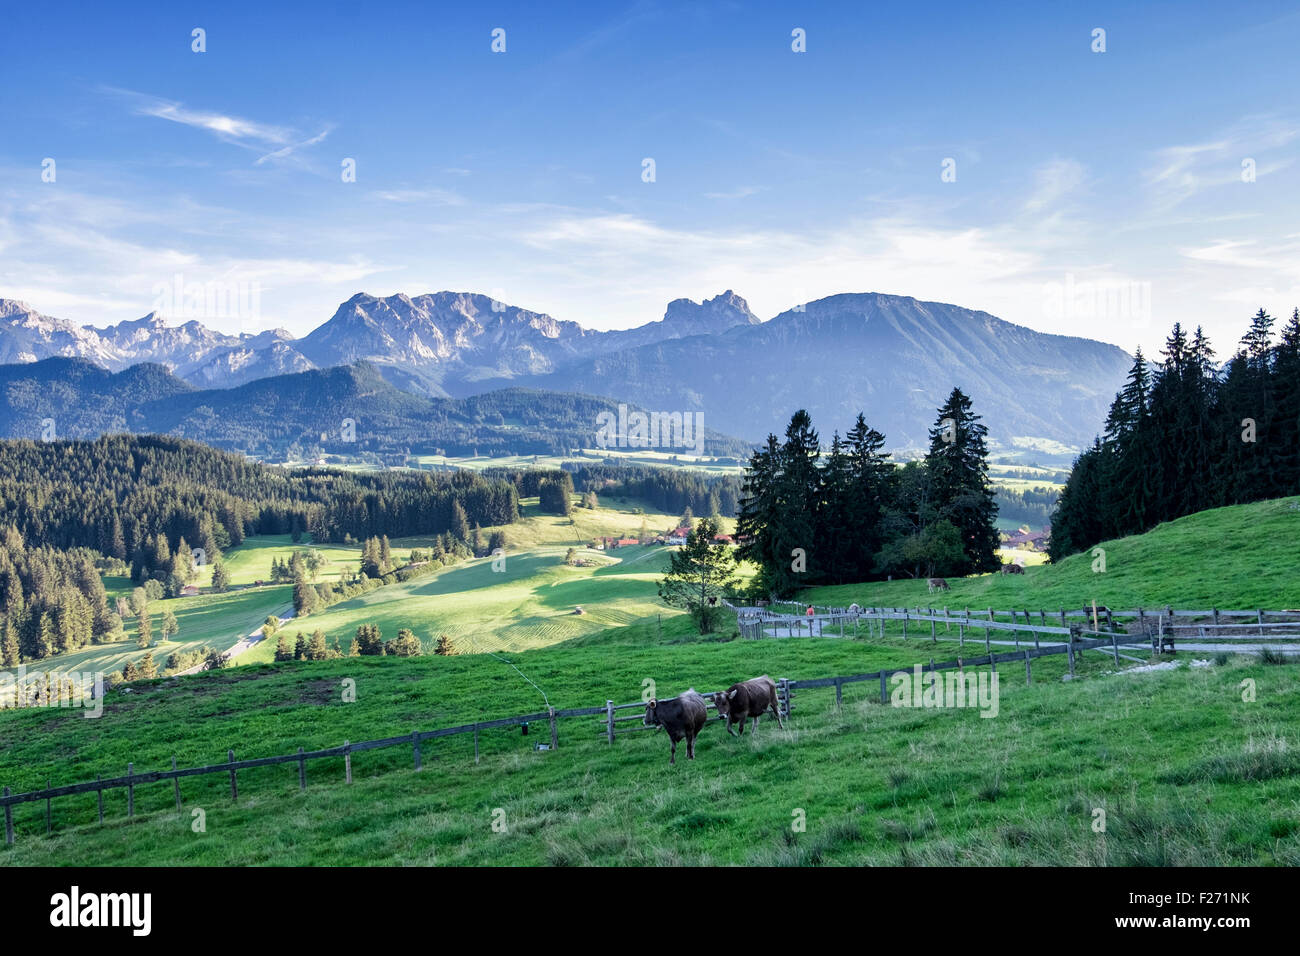 Bavarian Alps with cows grazing in lush farm meadow, Eisenberg, Eastern Allgaü, Bavaria, Germany - Stock Image